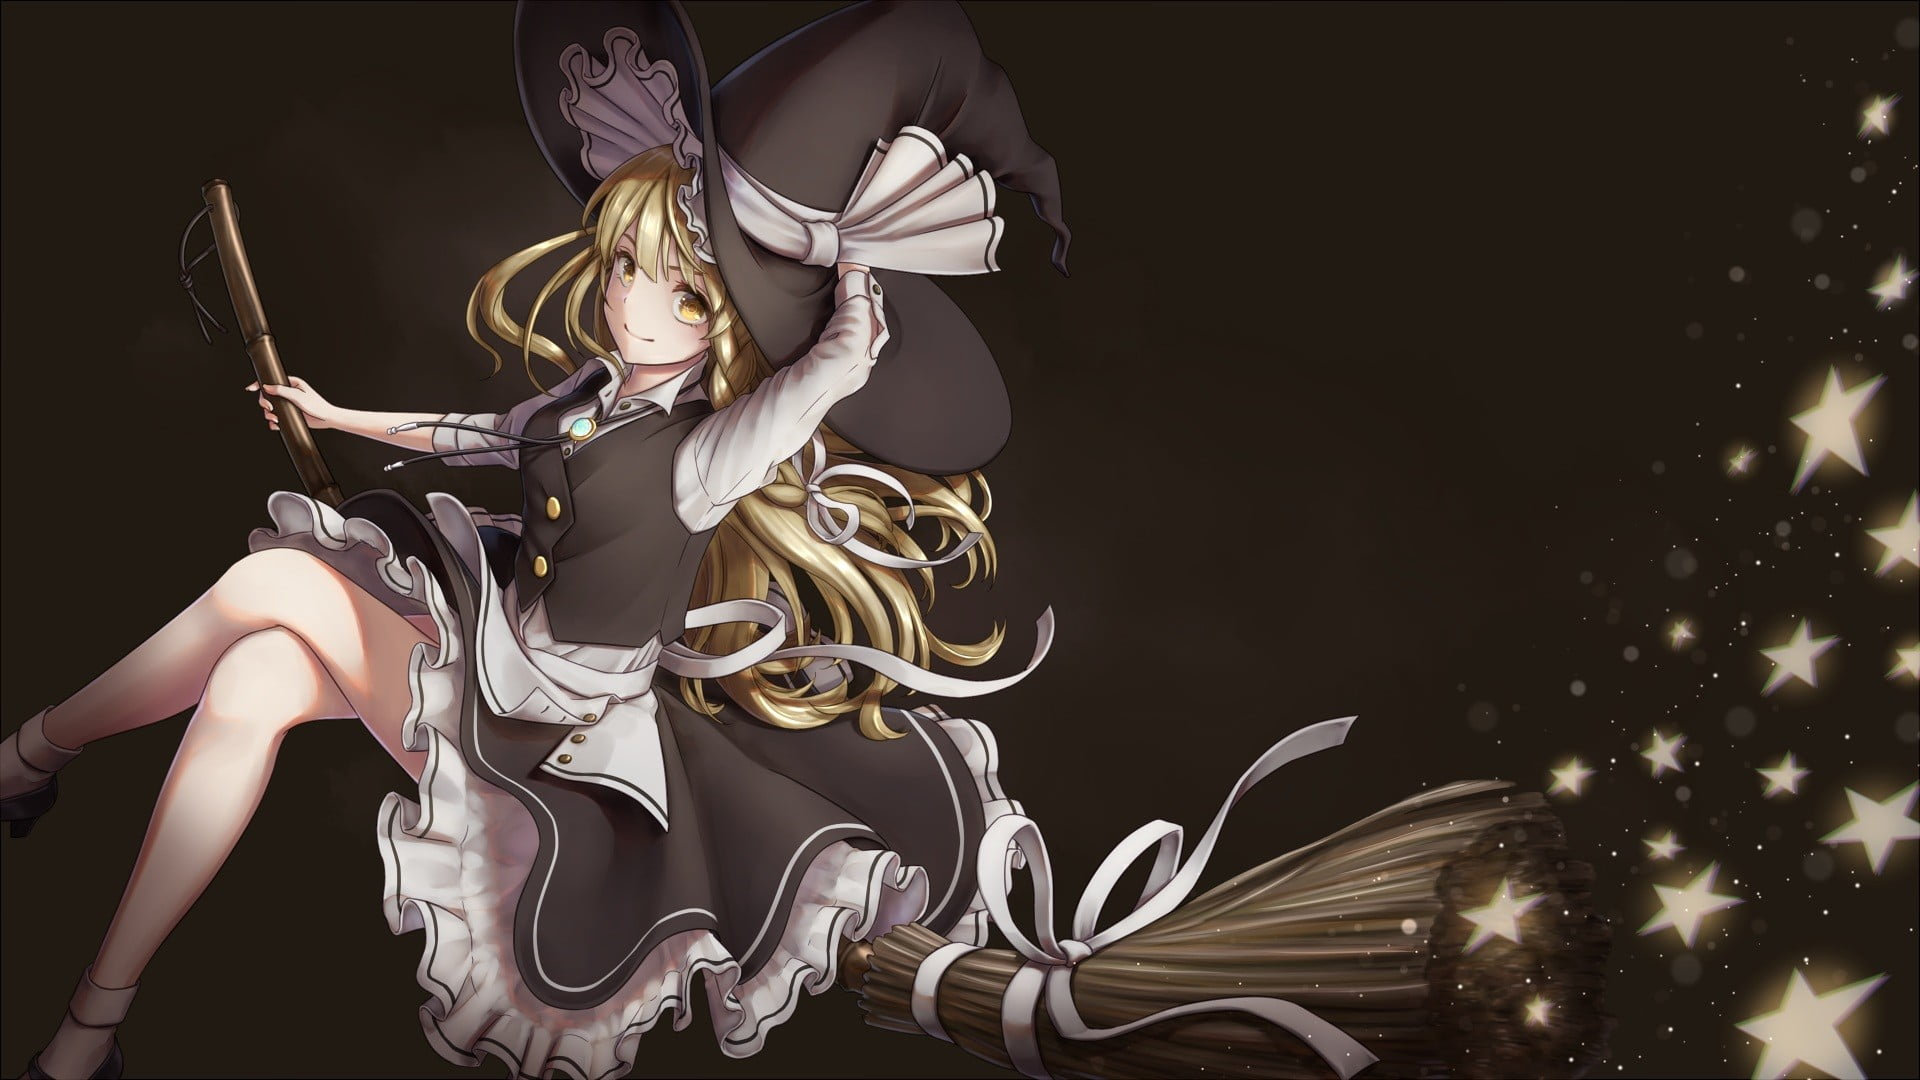 Blonde haired female anime character riding broom stick 1920x1080